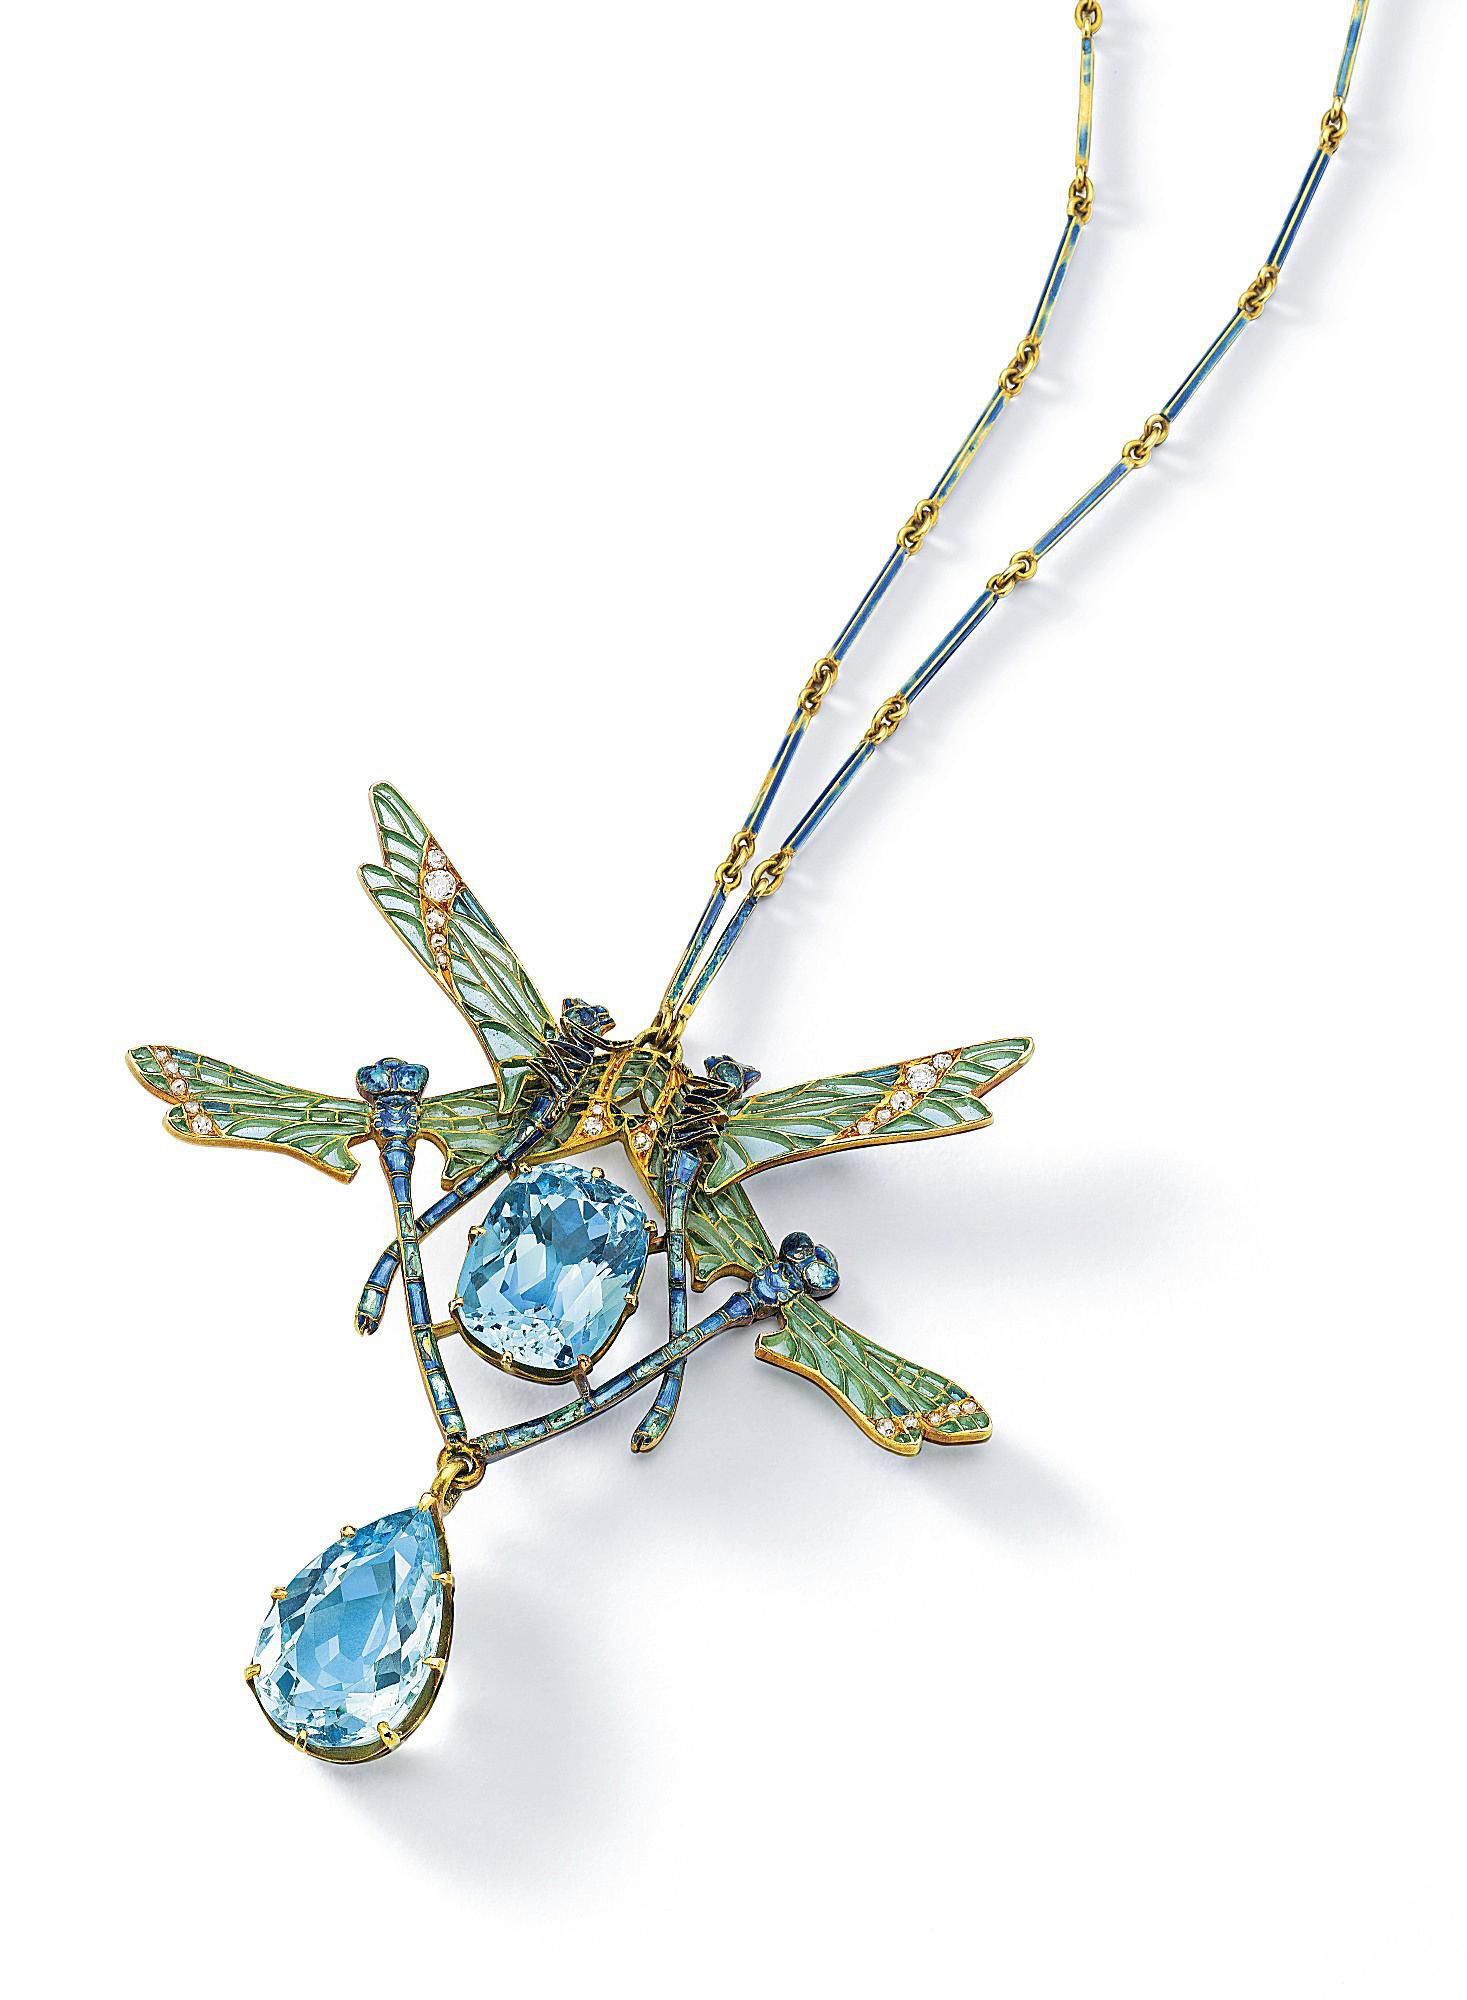 Rene Lalique Jewelry And Glassware